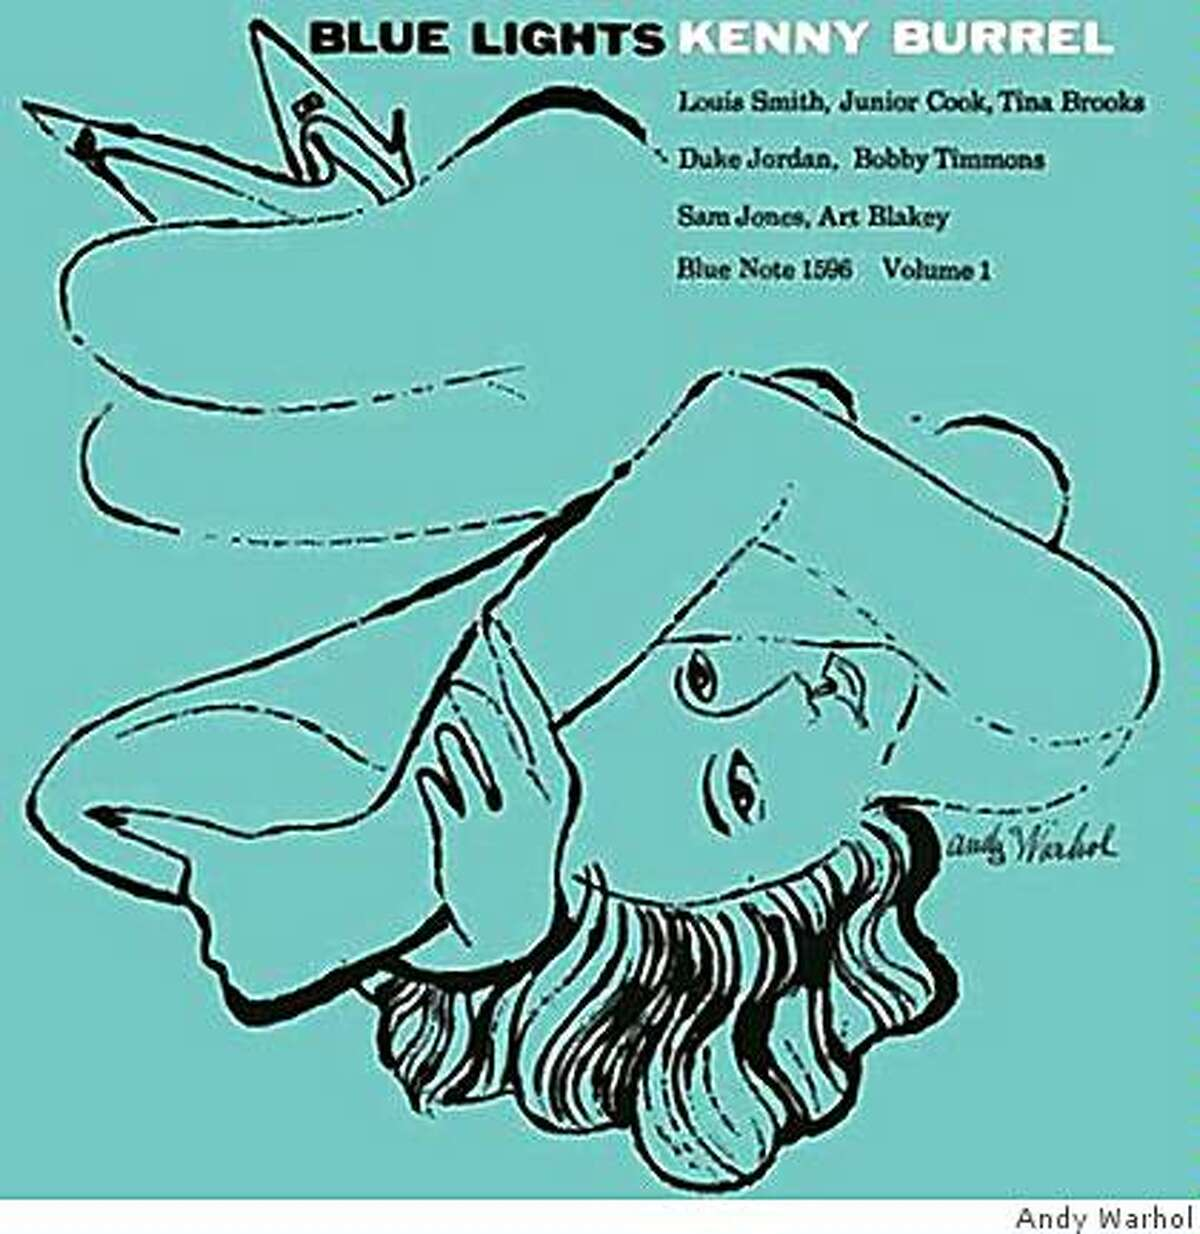 COVER ART:KENNY BURRELL?BLUE LIGHTS VOLUMES 1 AND 2? (1958)ANDY WARHOL